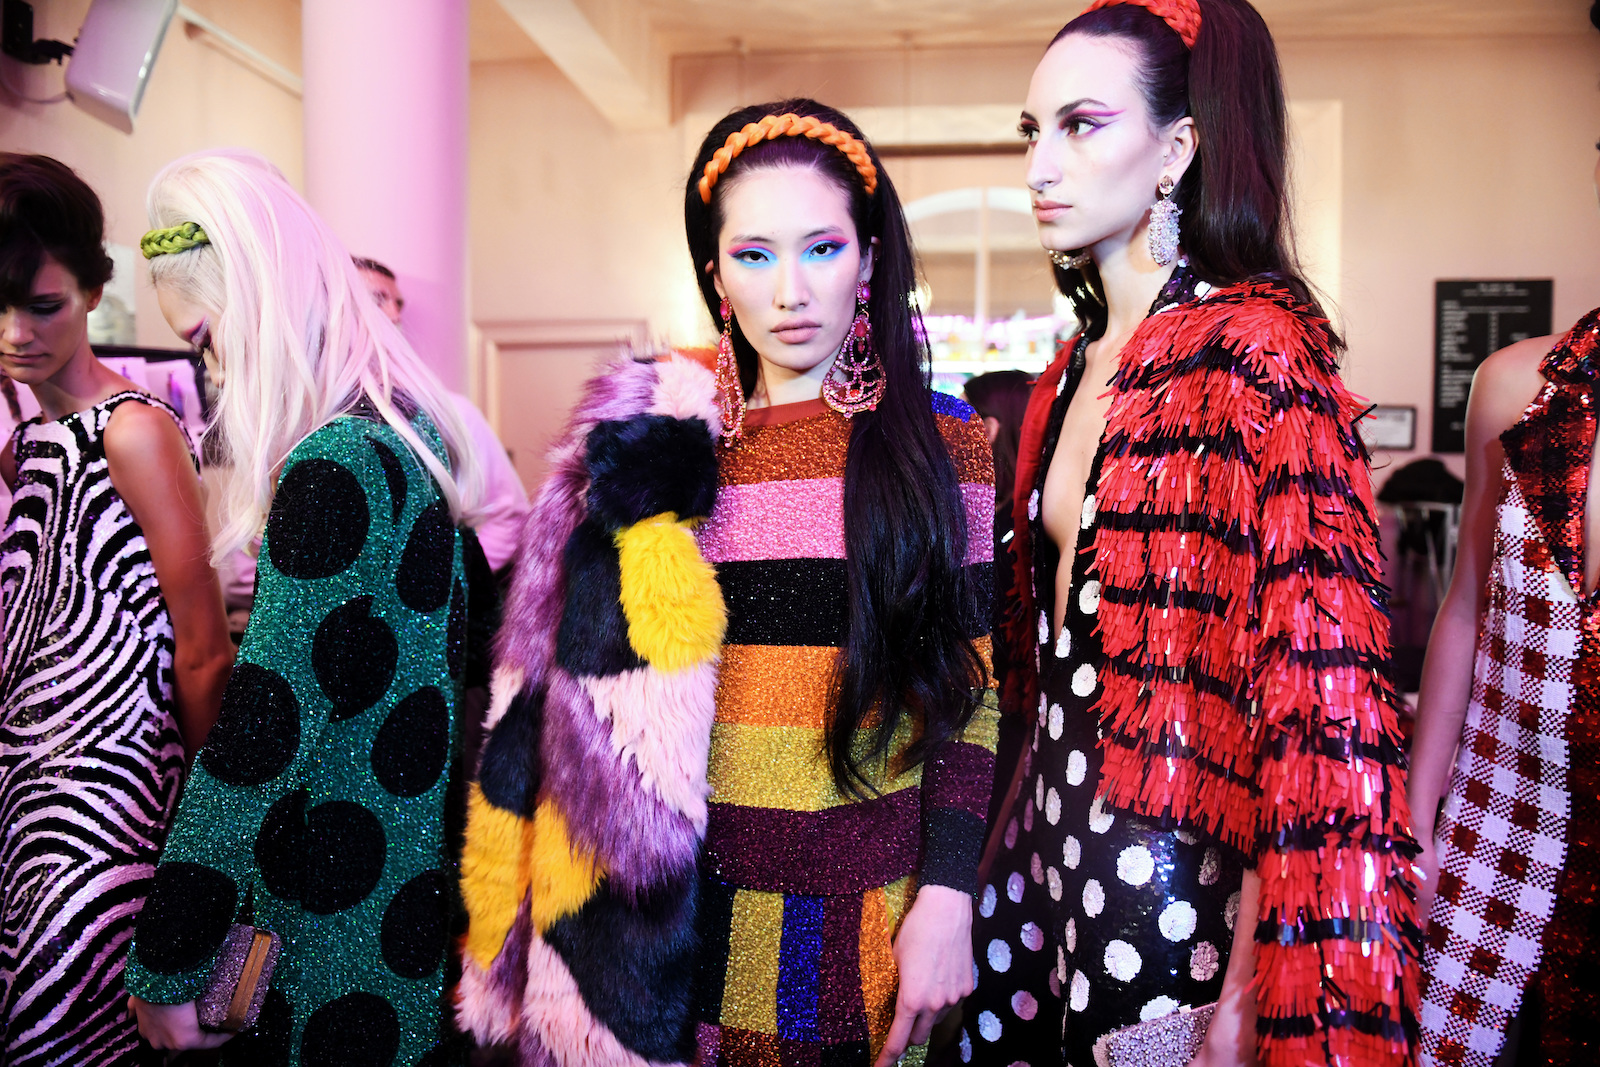 London Fashion Week: When is London Fashion Week 2021?